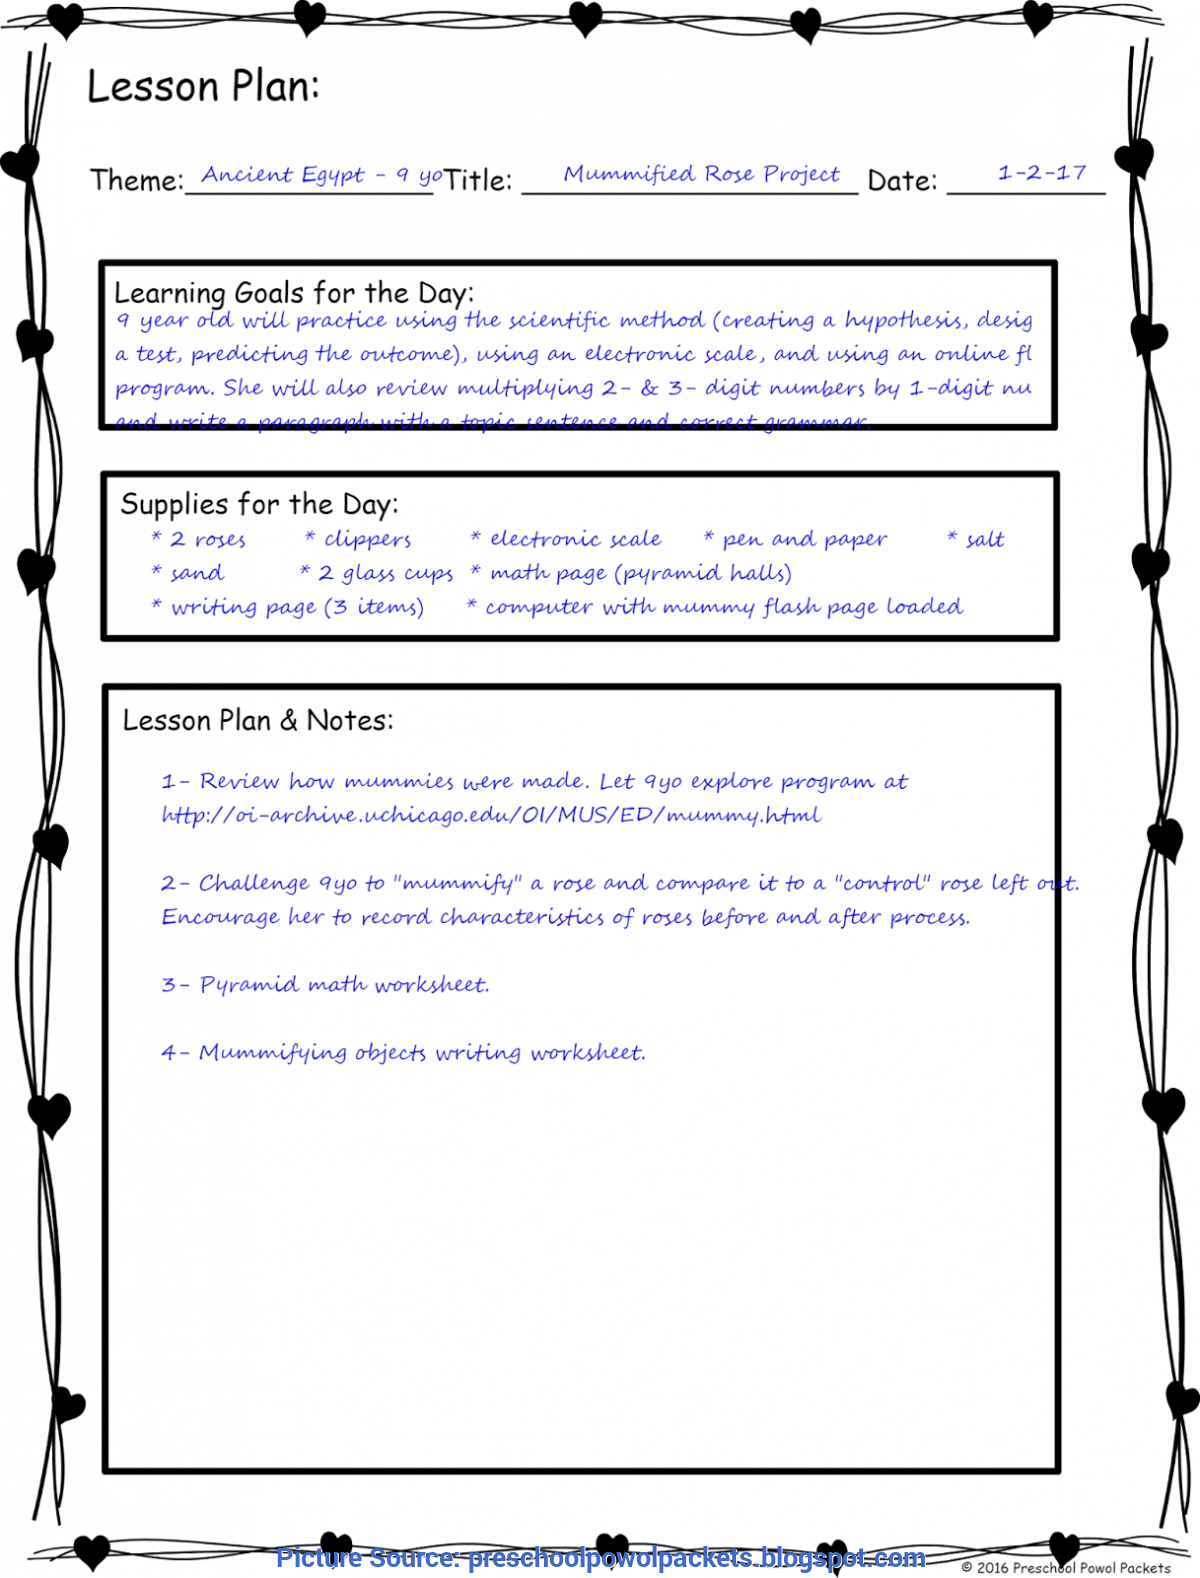 Typical How To Make A Lesson Plan For 3 Year Olds How To Design A Stem Homeschool Curriculum   Preschool Powol Pac